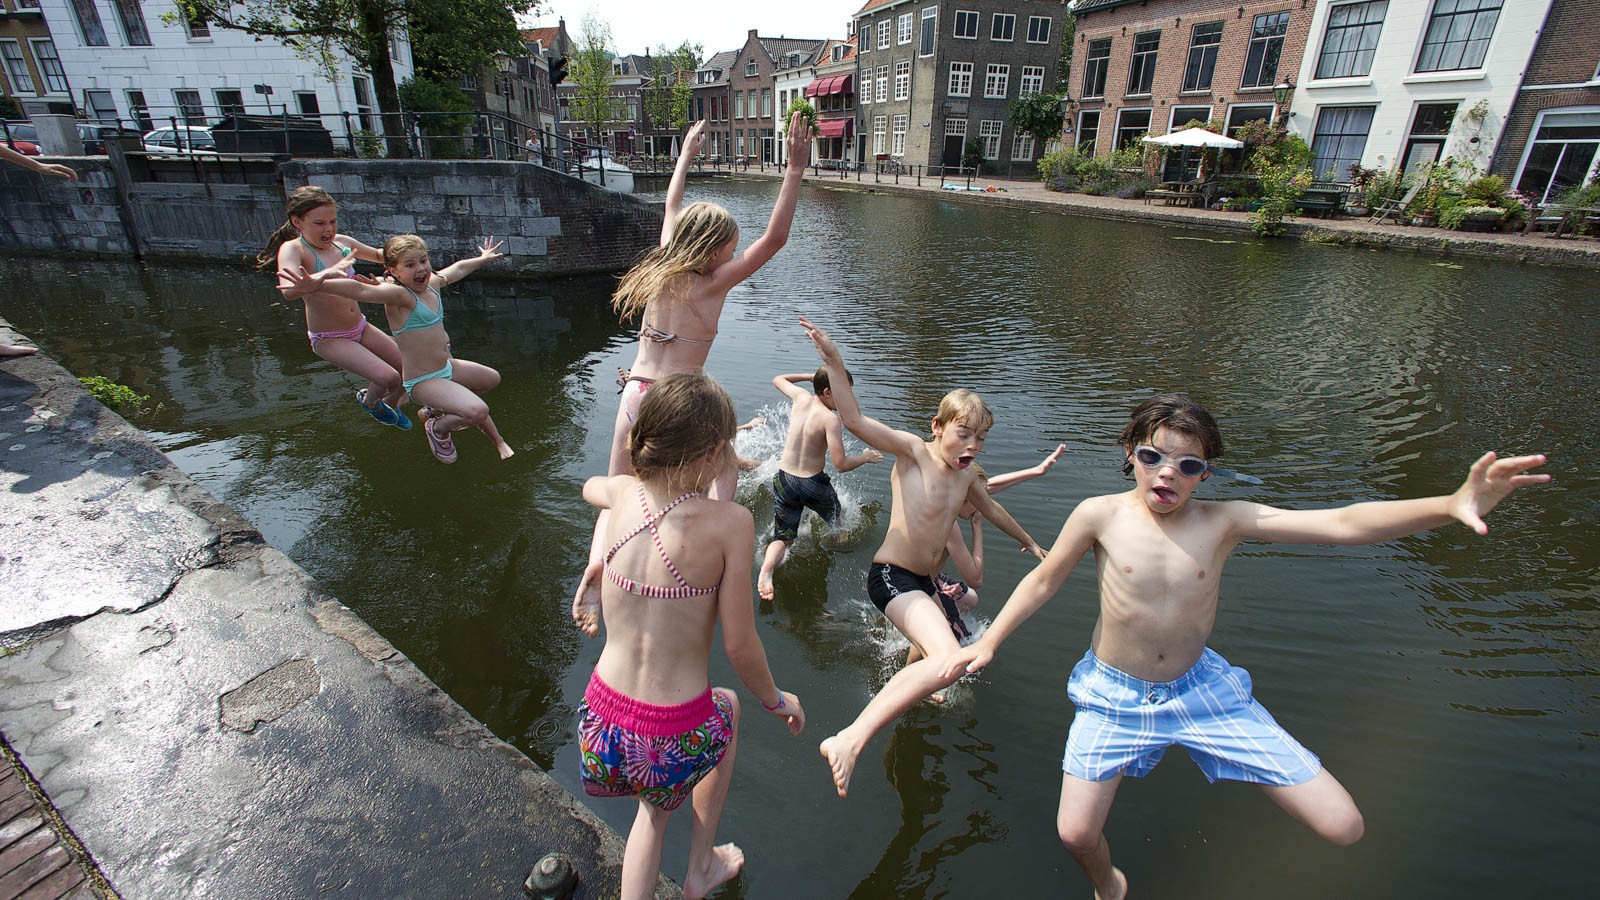 Dutch kids are said to enjoy better peer relationships, more freedom and less academic pressure than English-speaking children